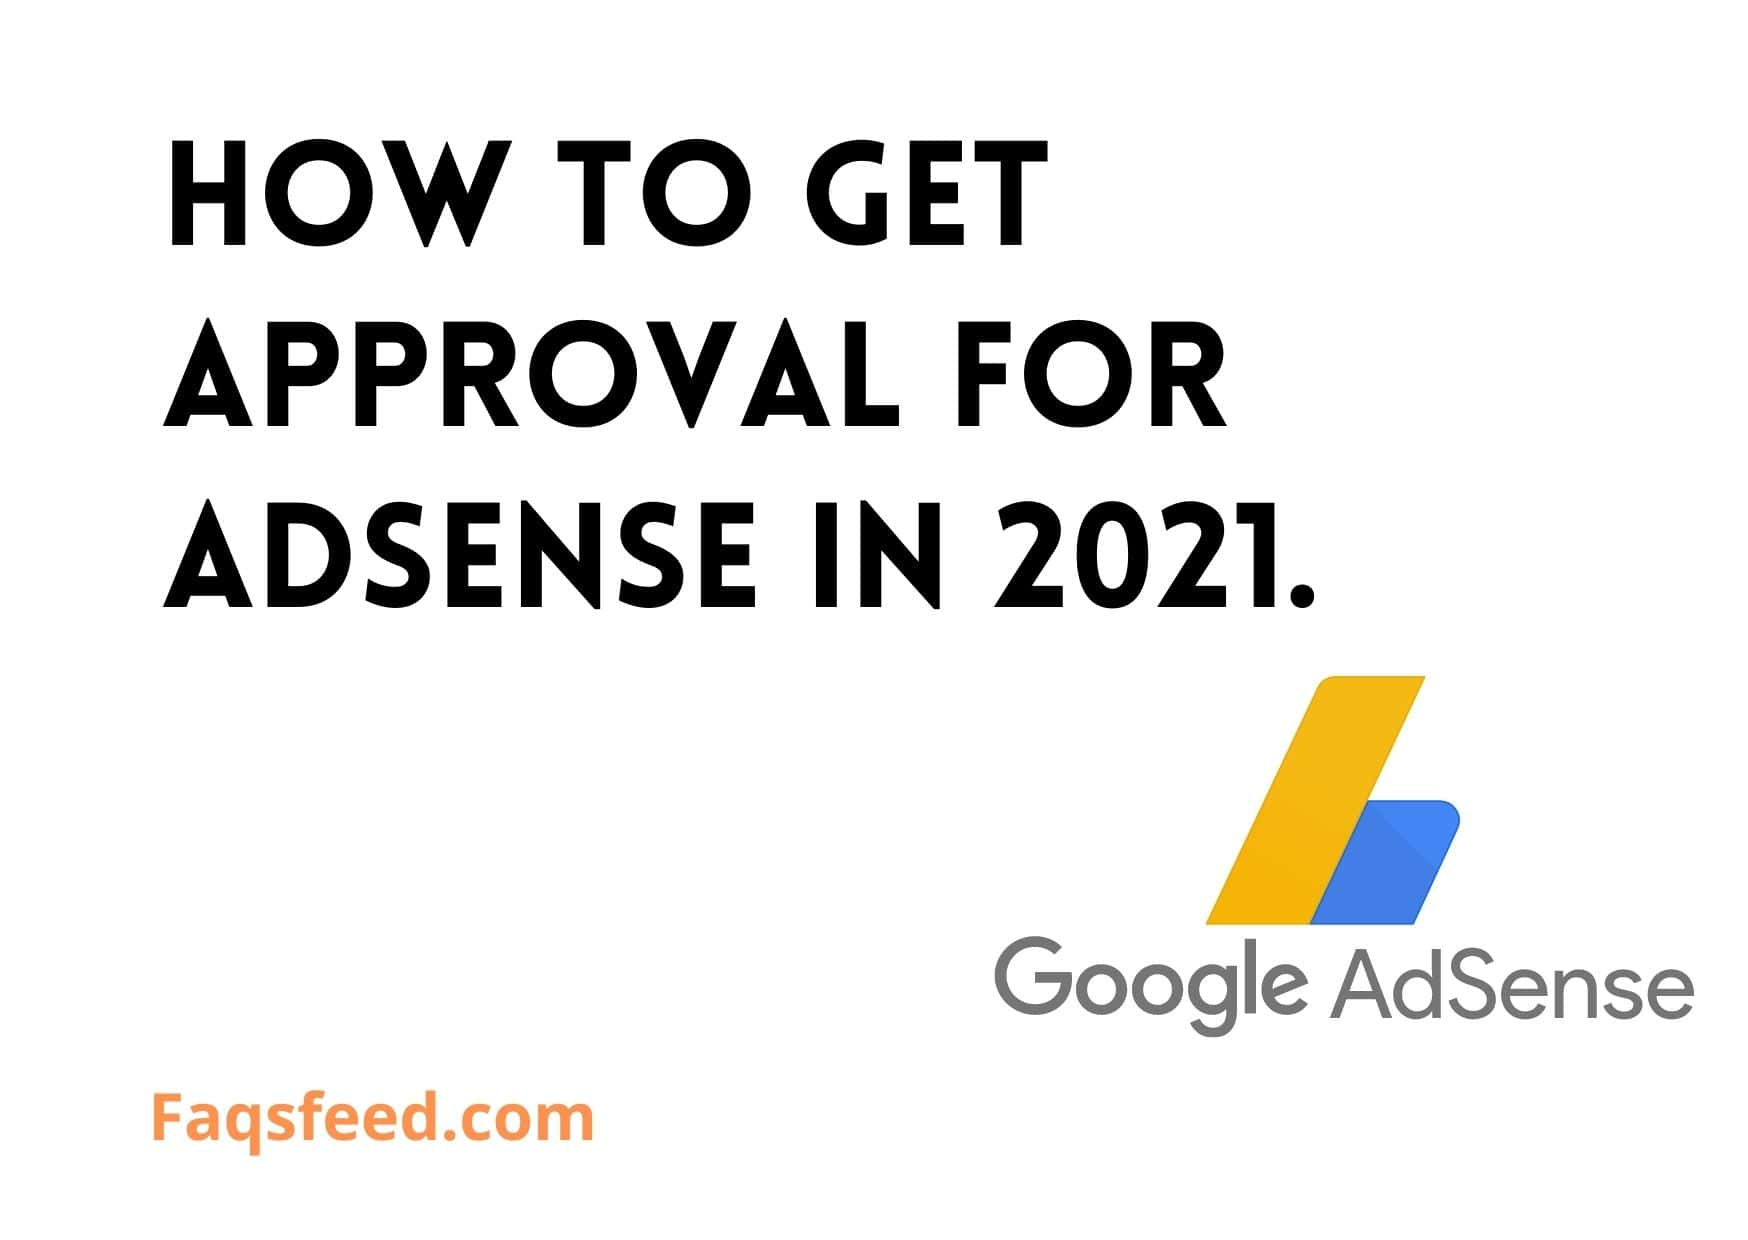 How to get approval for Adsense in 2021